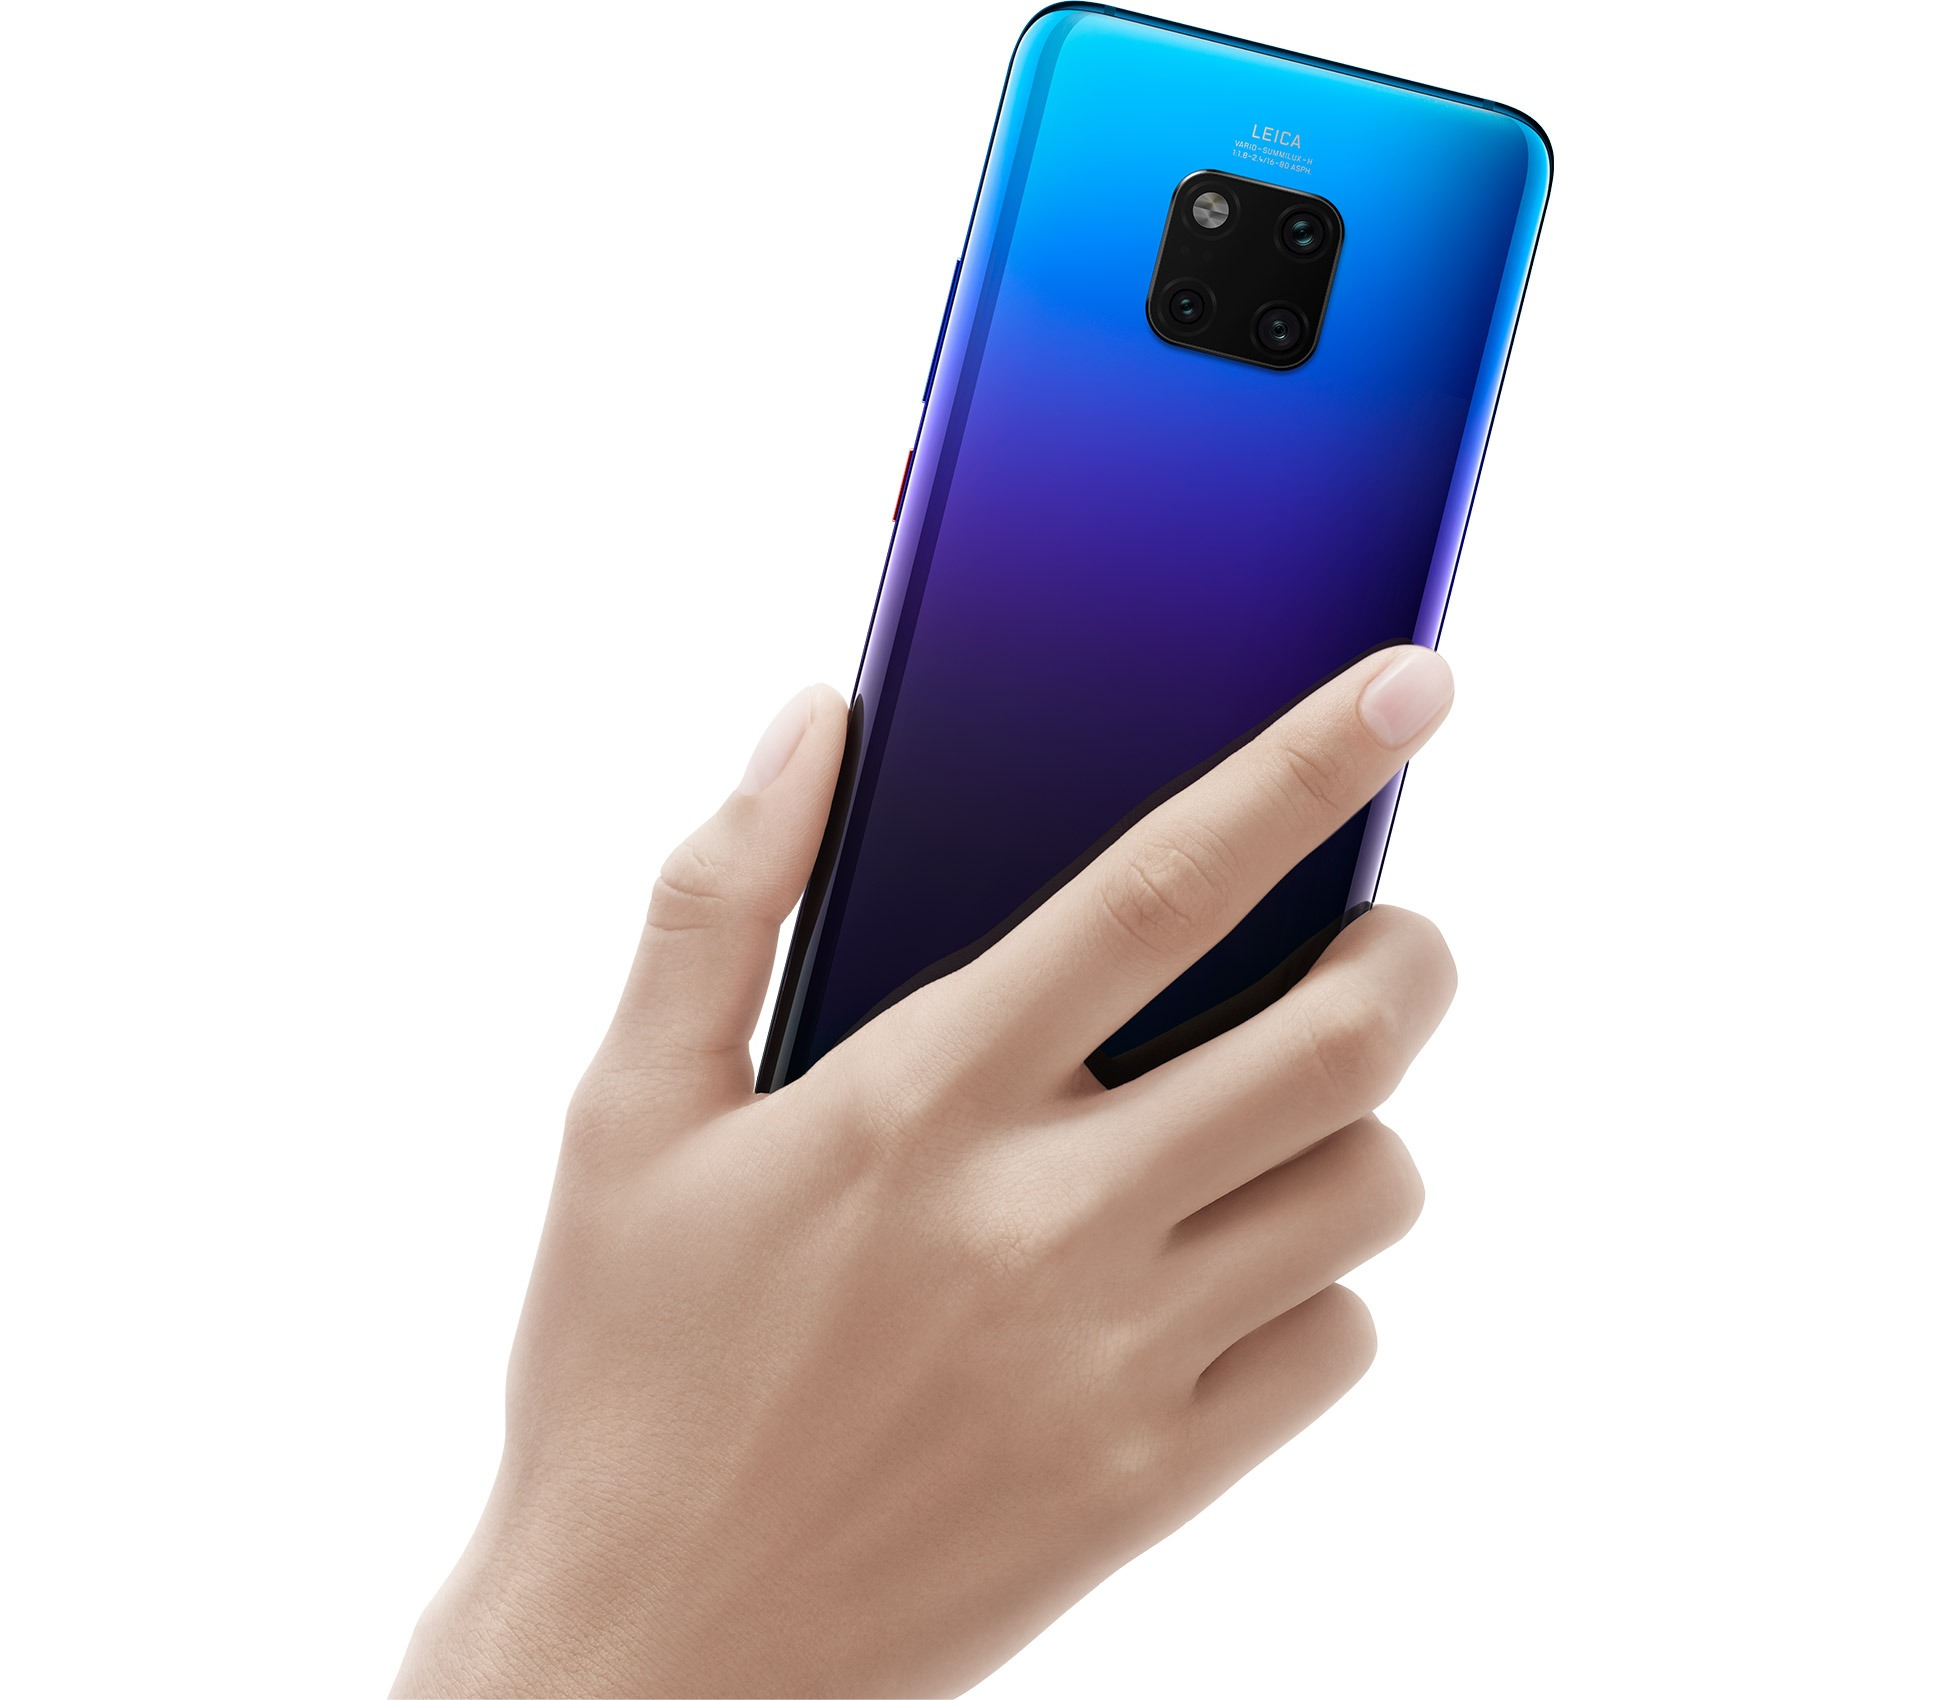 Huawei Mate 20 Mate 20 Pro Officially Launched Droidholic